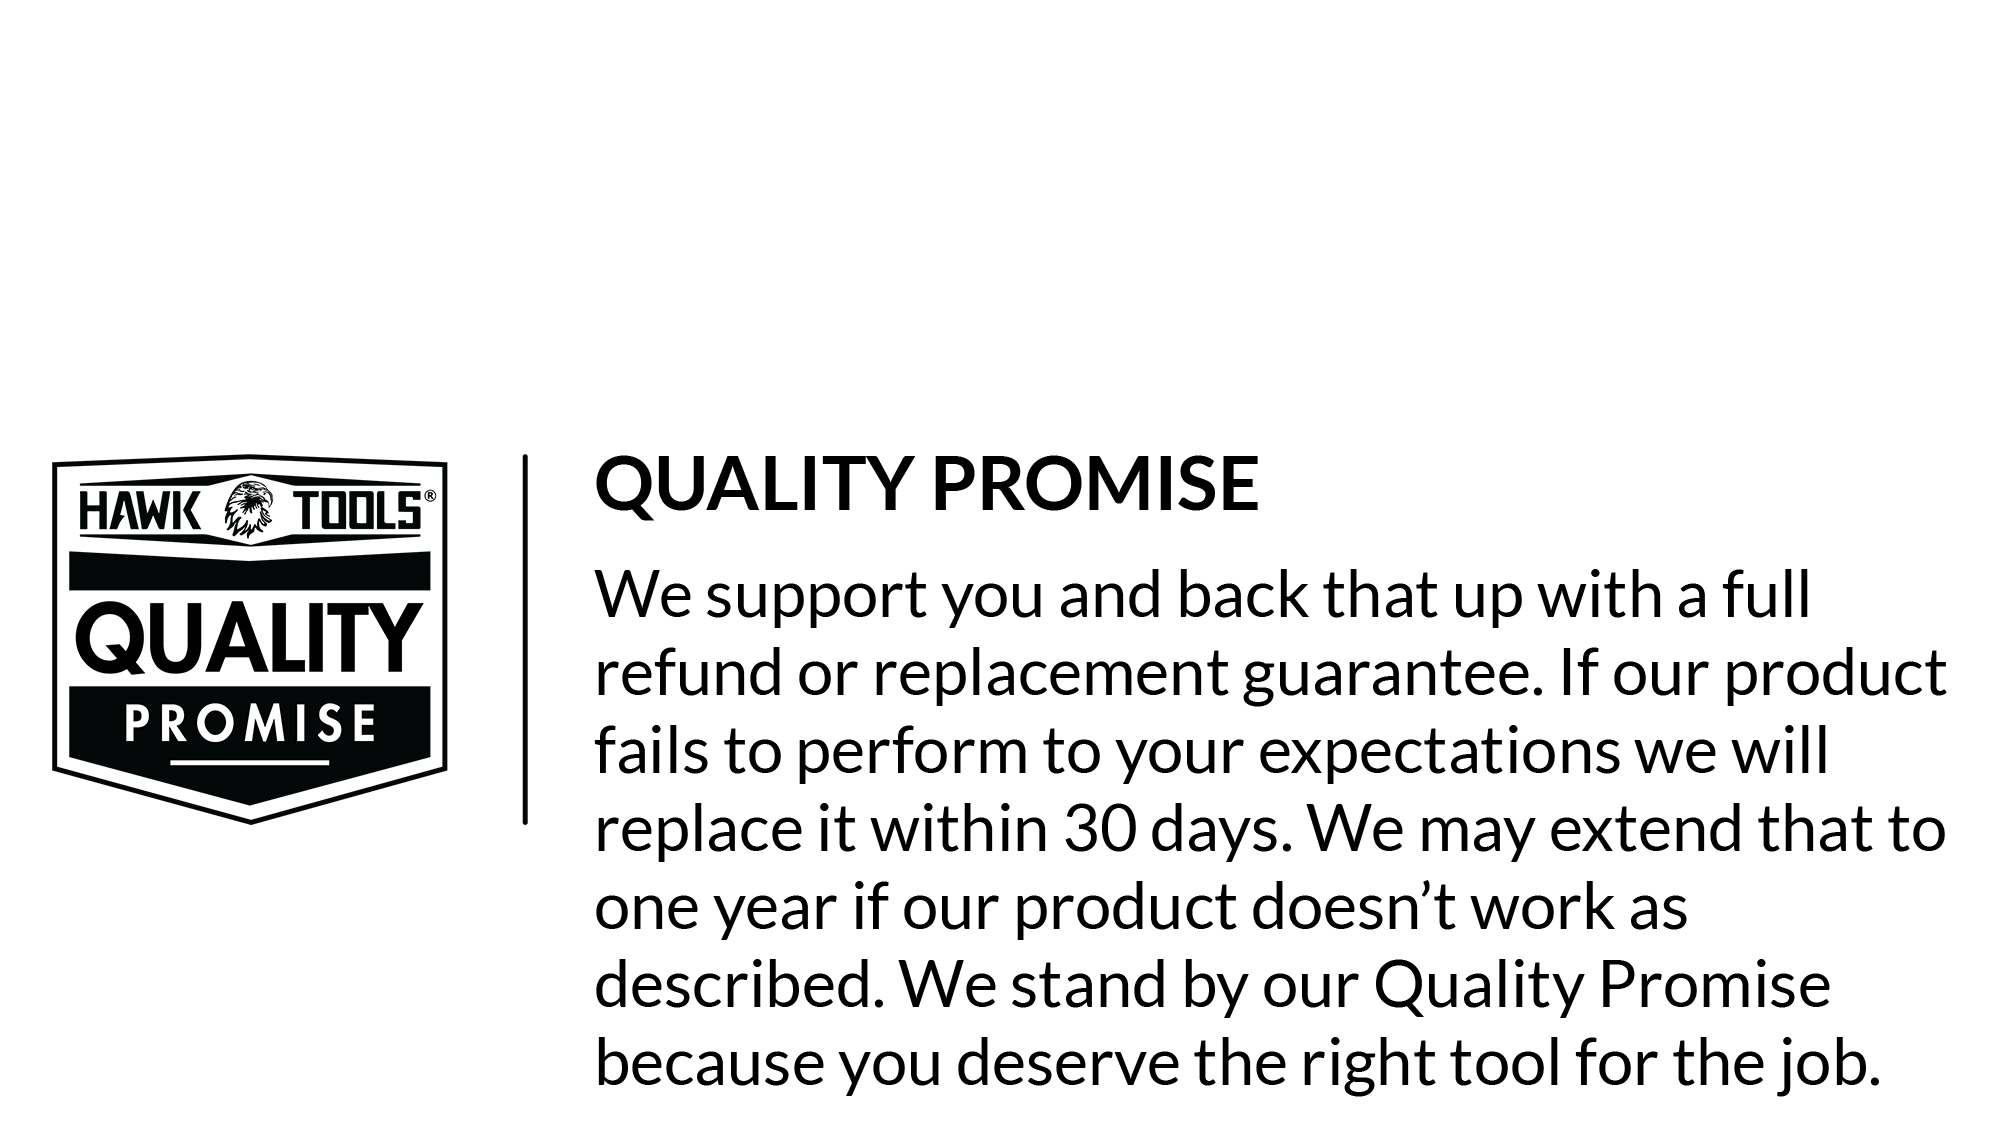 Hawk Tools Quality Promise Guarantee Image